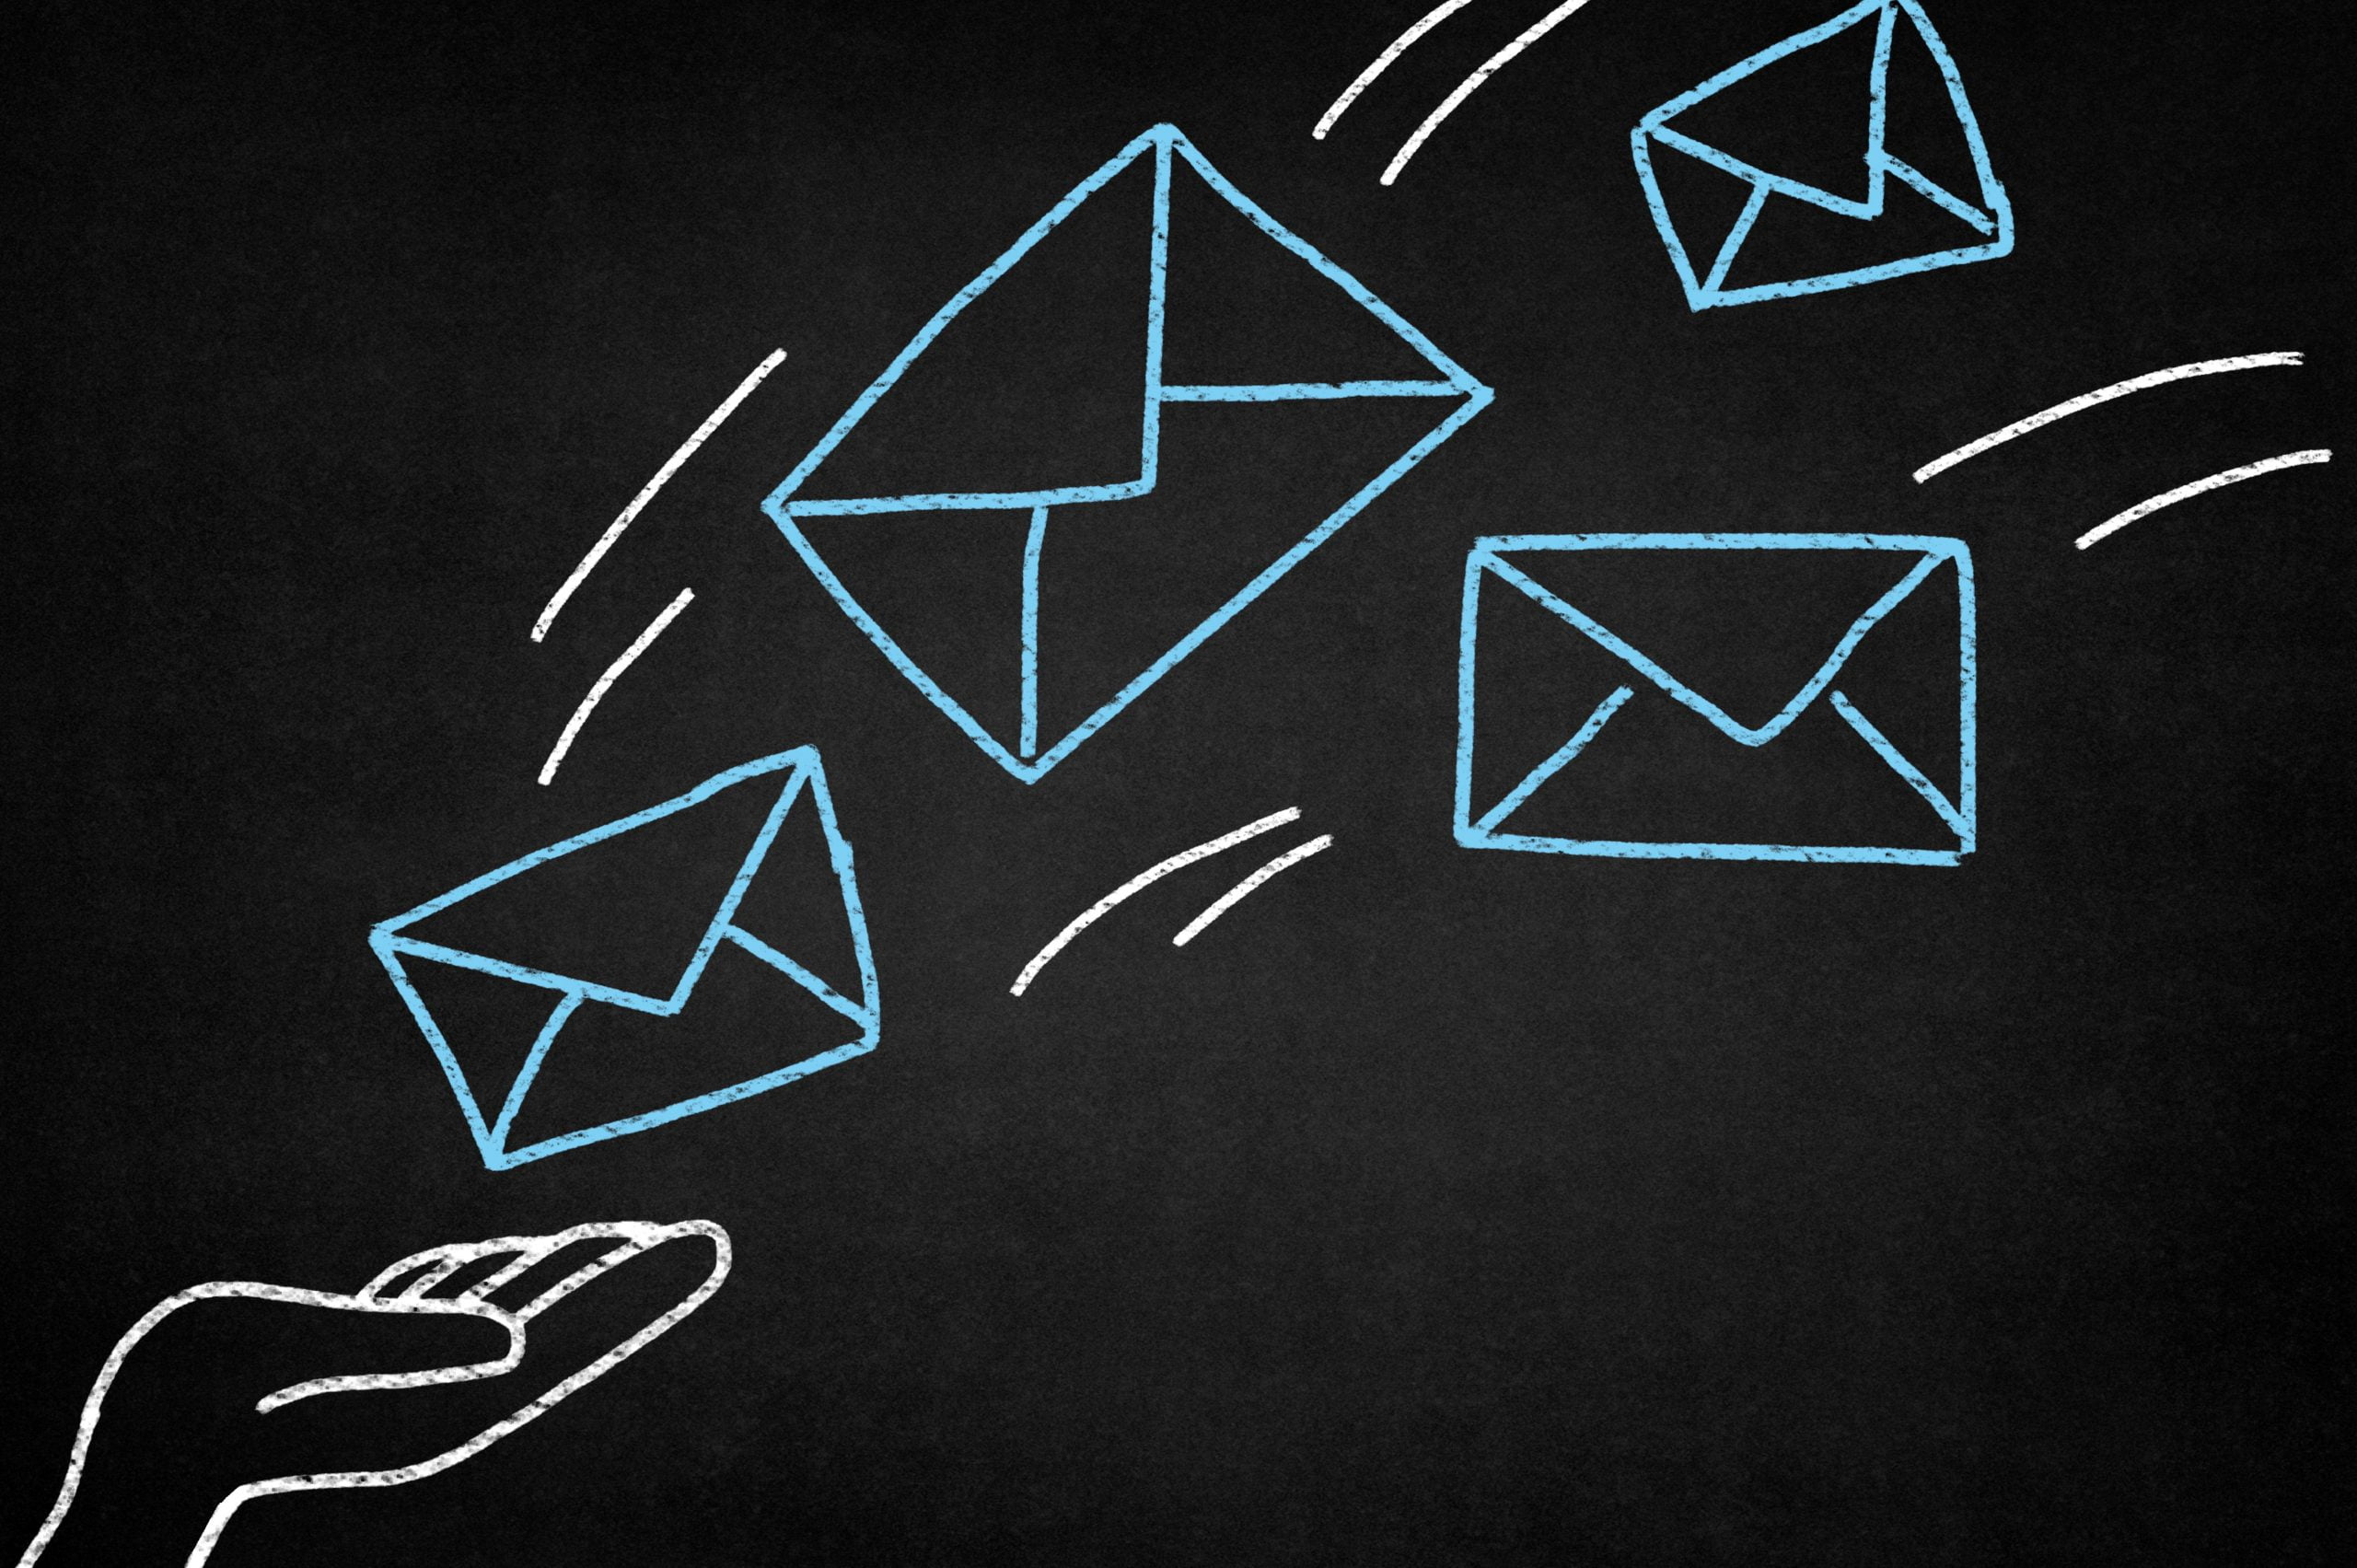 email services without phone number